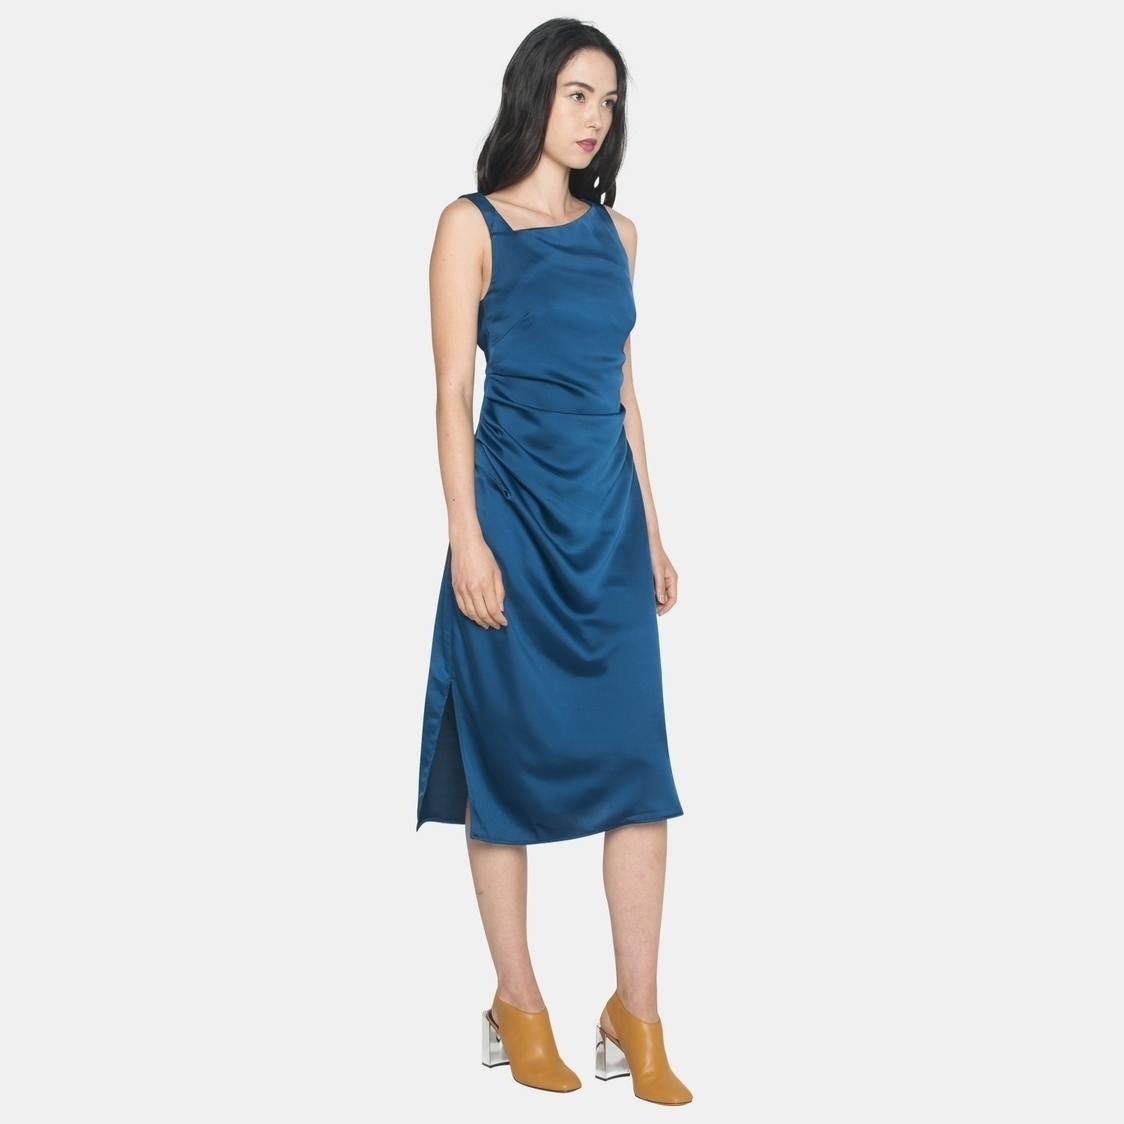 Ellysage Toga Draped Midi in Navy